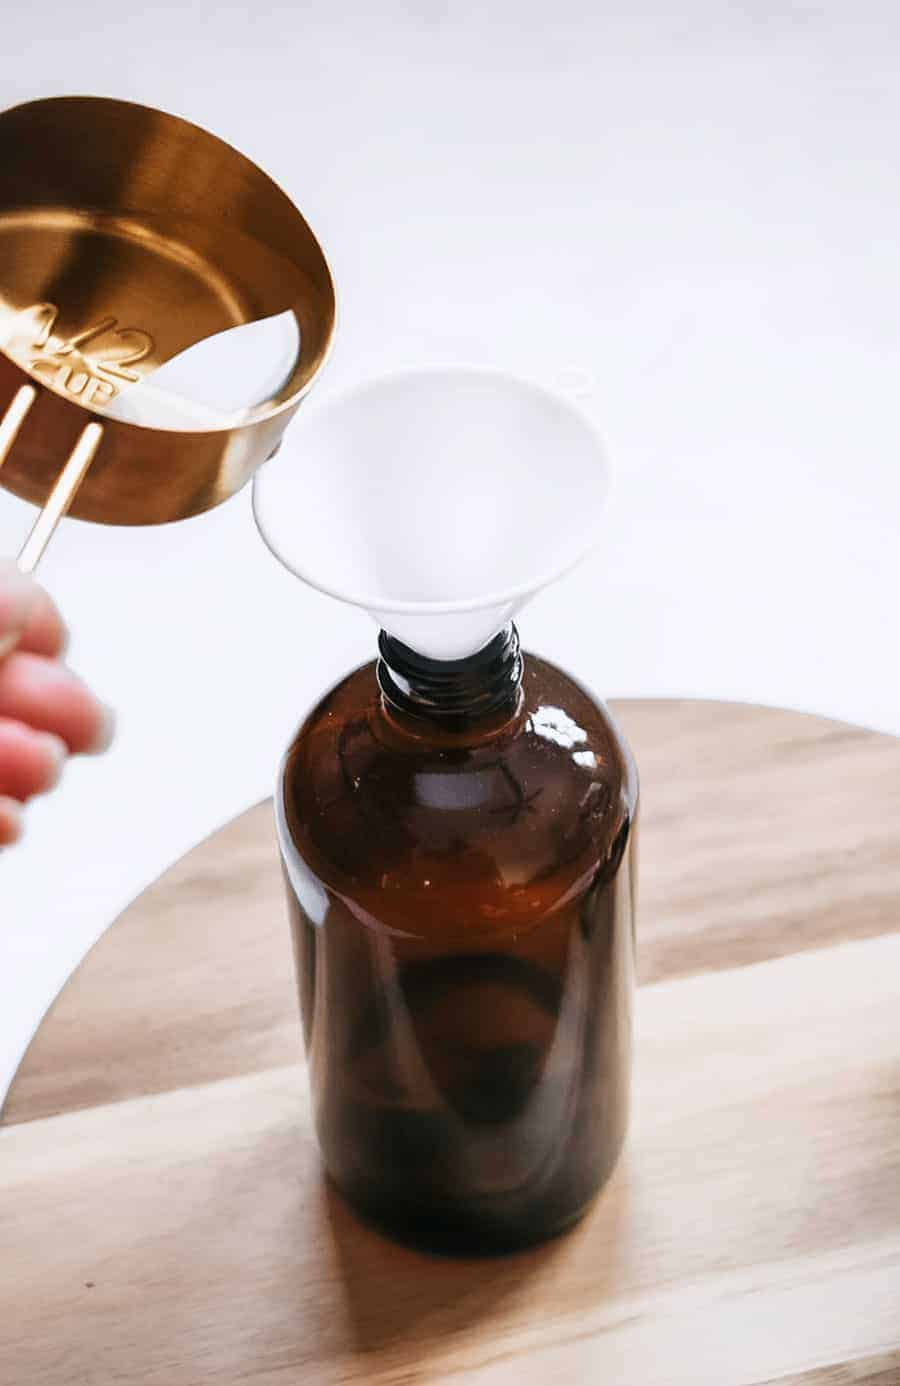 person pouring vinegar into brown glass bottle